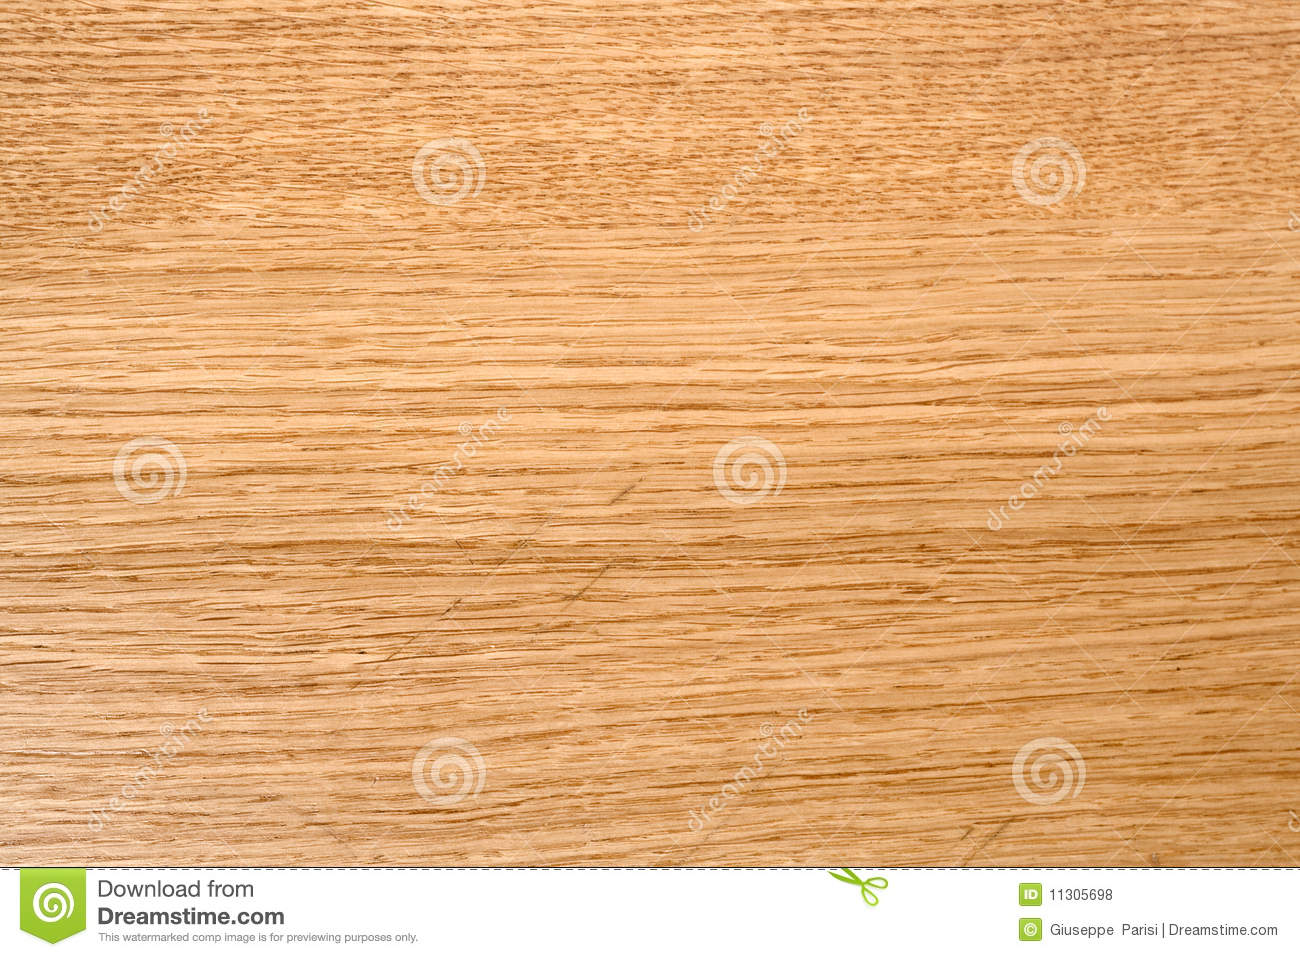 Light brown wood texture images amp pictures becuo